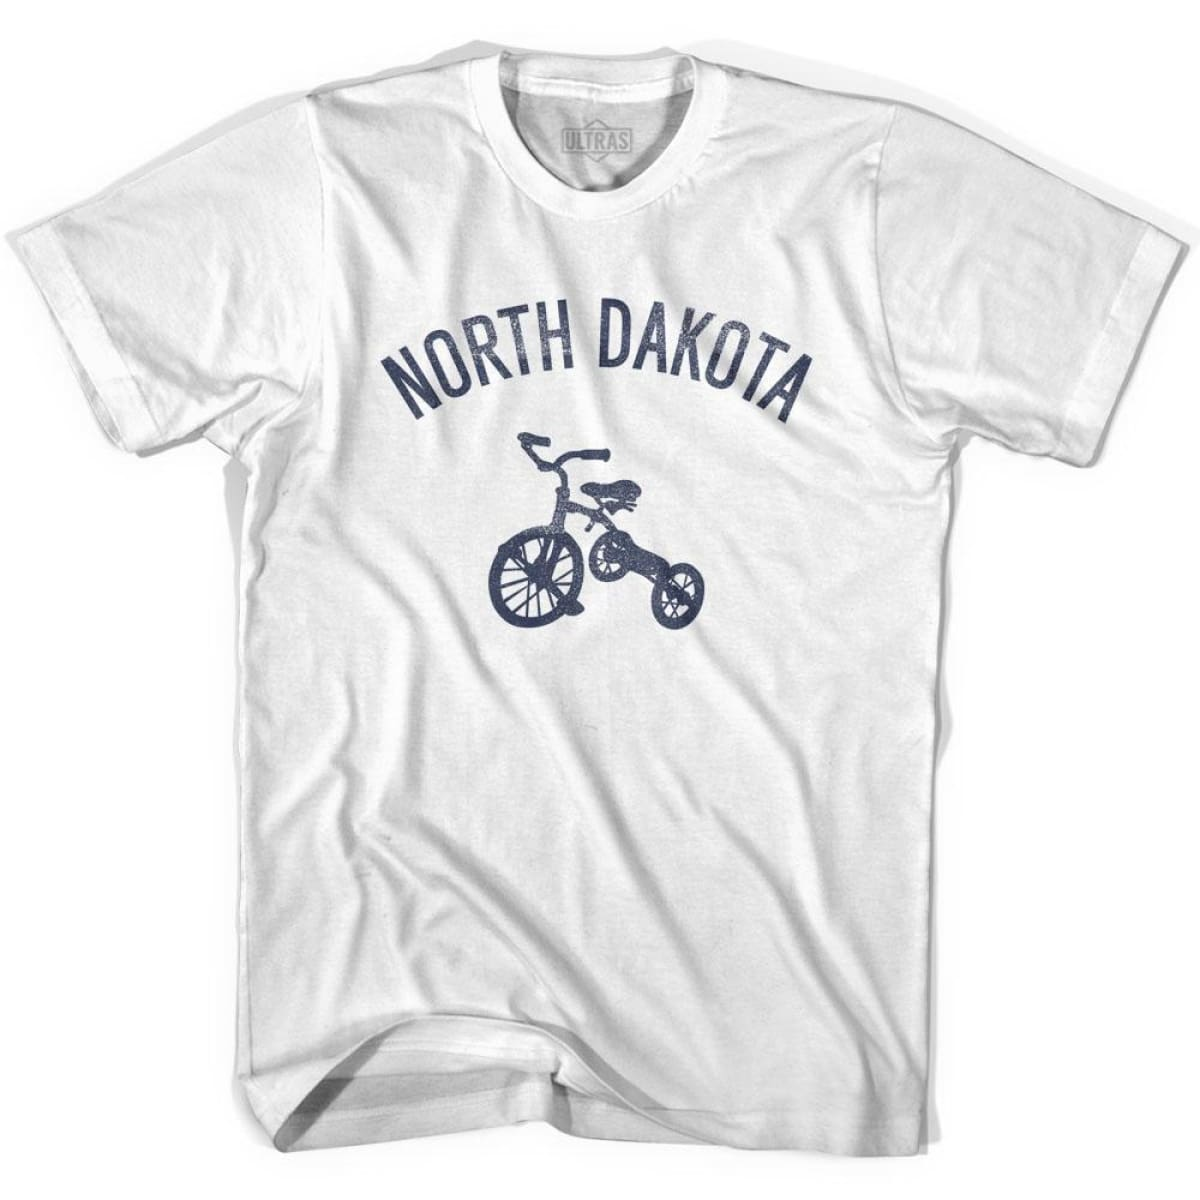 North Dakota State Tricycle Adult Cotton T-shirt - White / Adult Small - Tricycle State